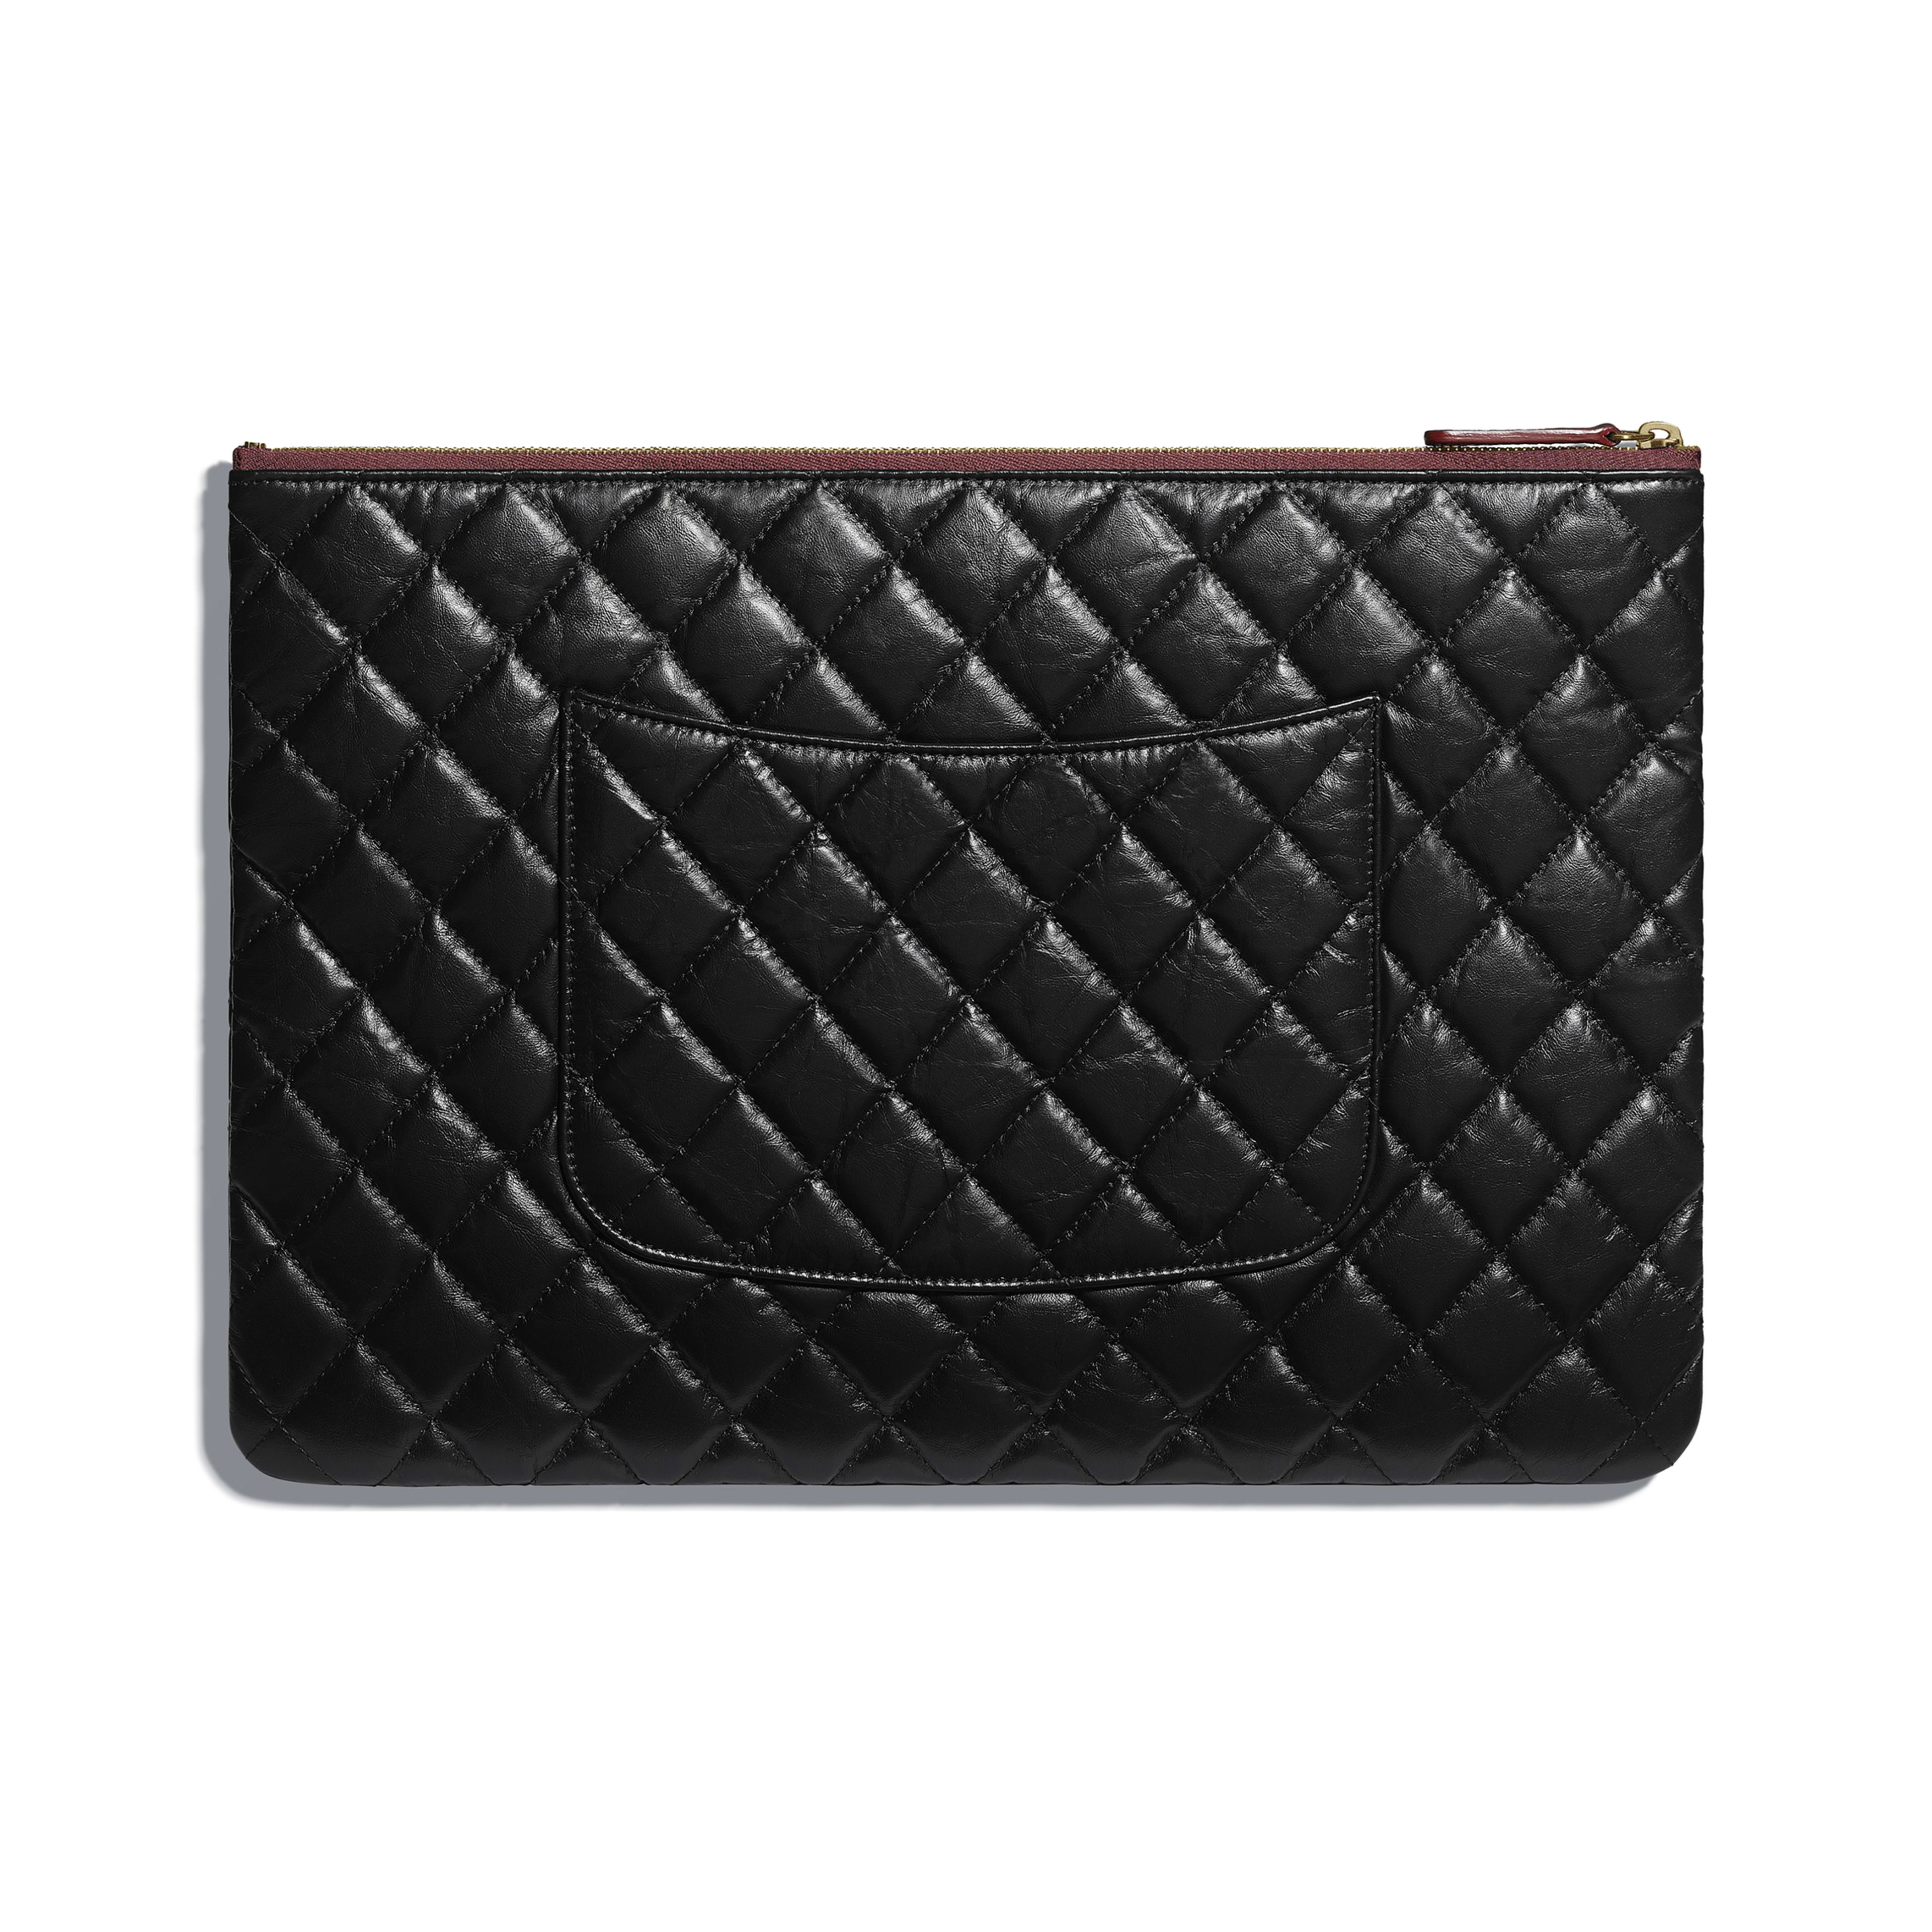 Large 2.55 Pouch - Black - Aged Calfskin & Gold-Tone Metal - Alternative view - see full sized version